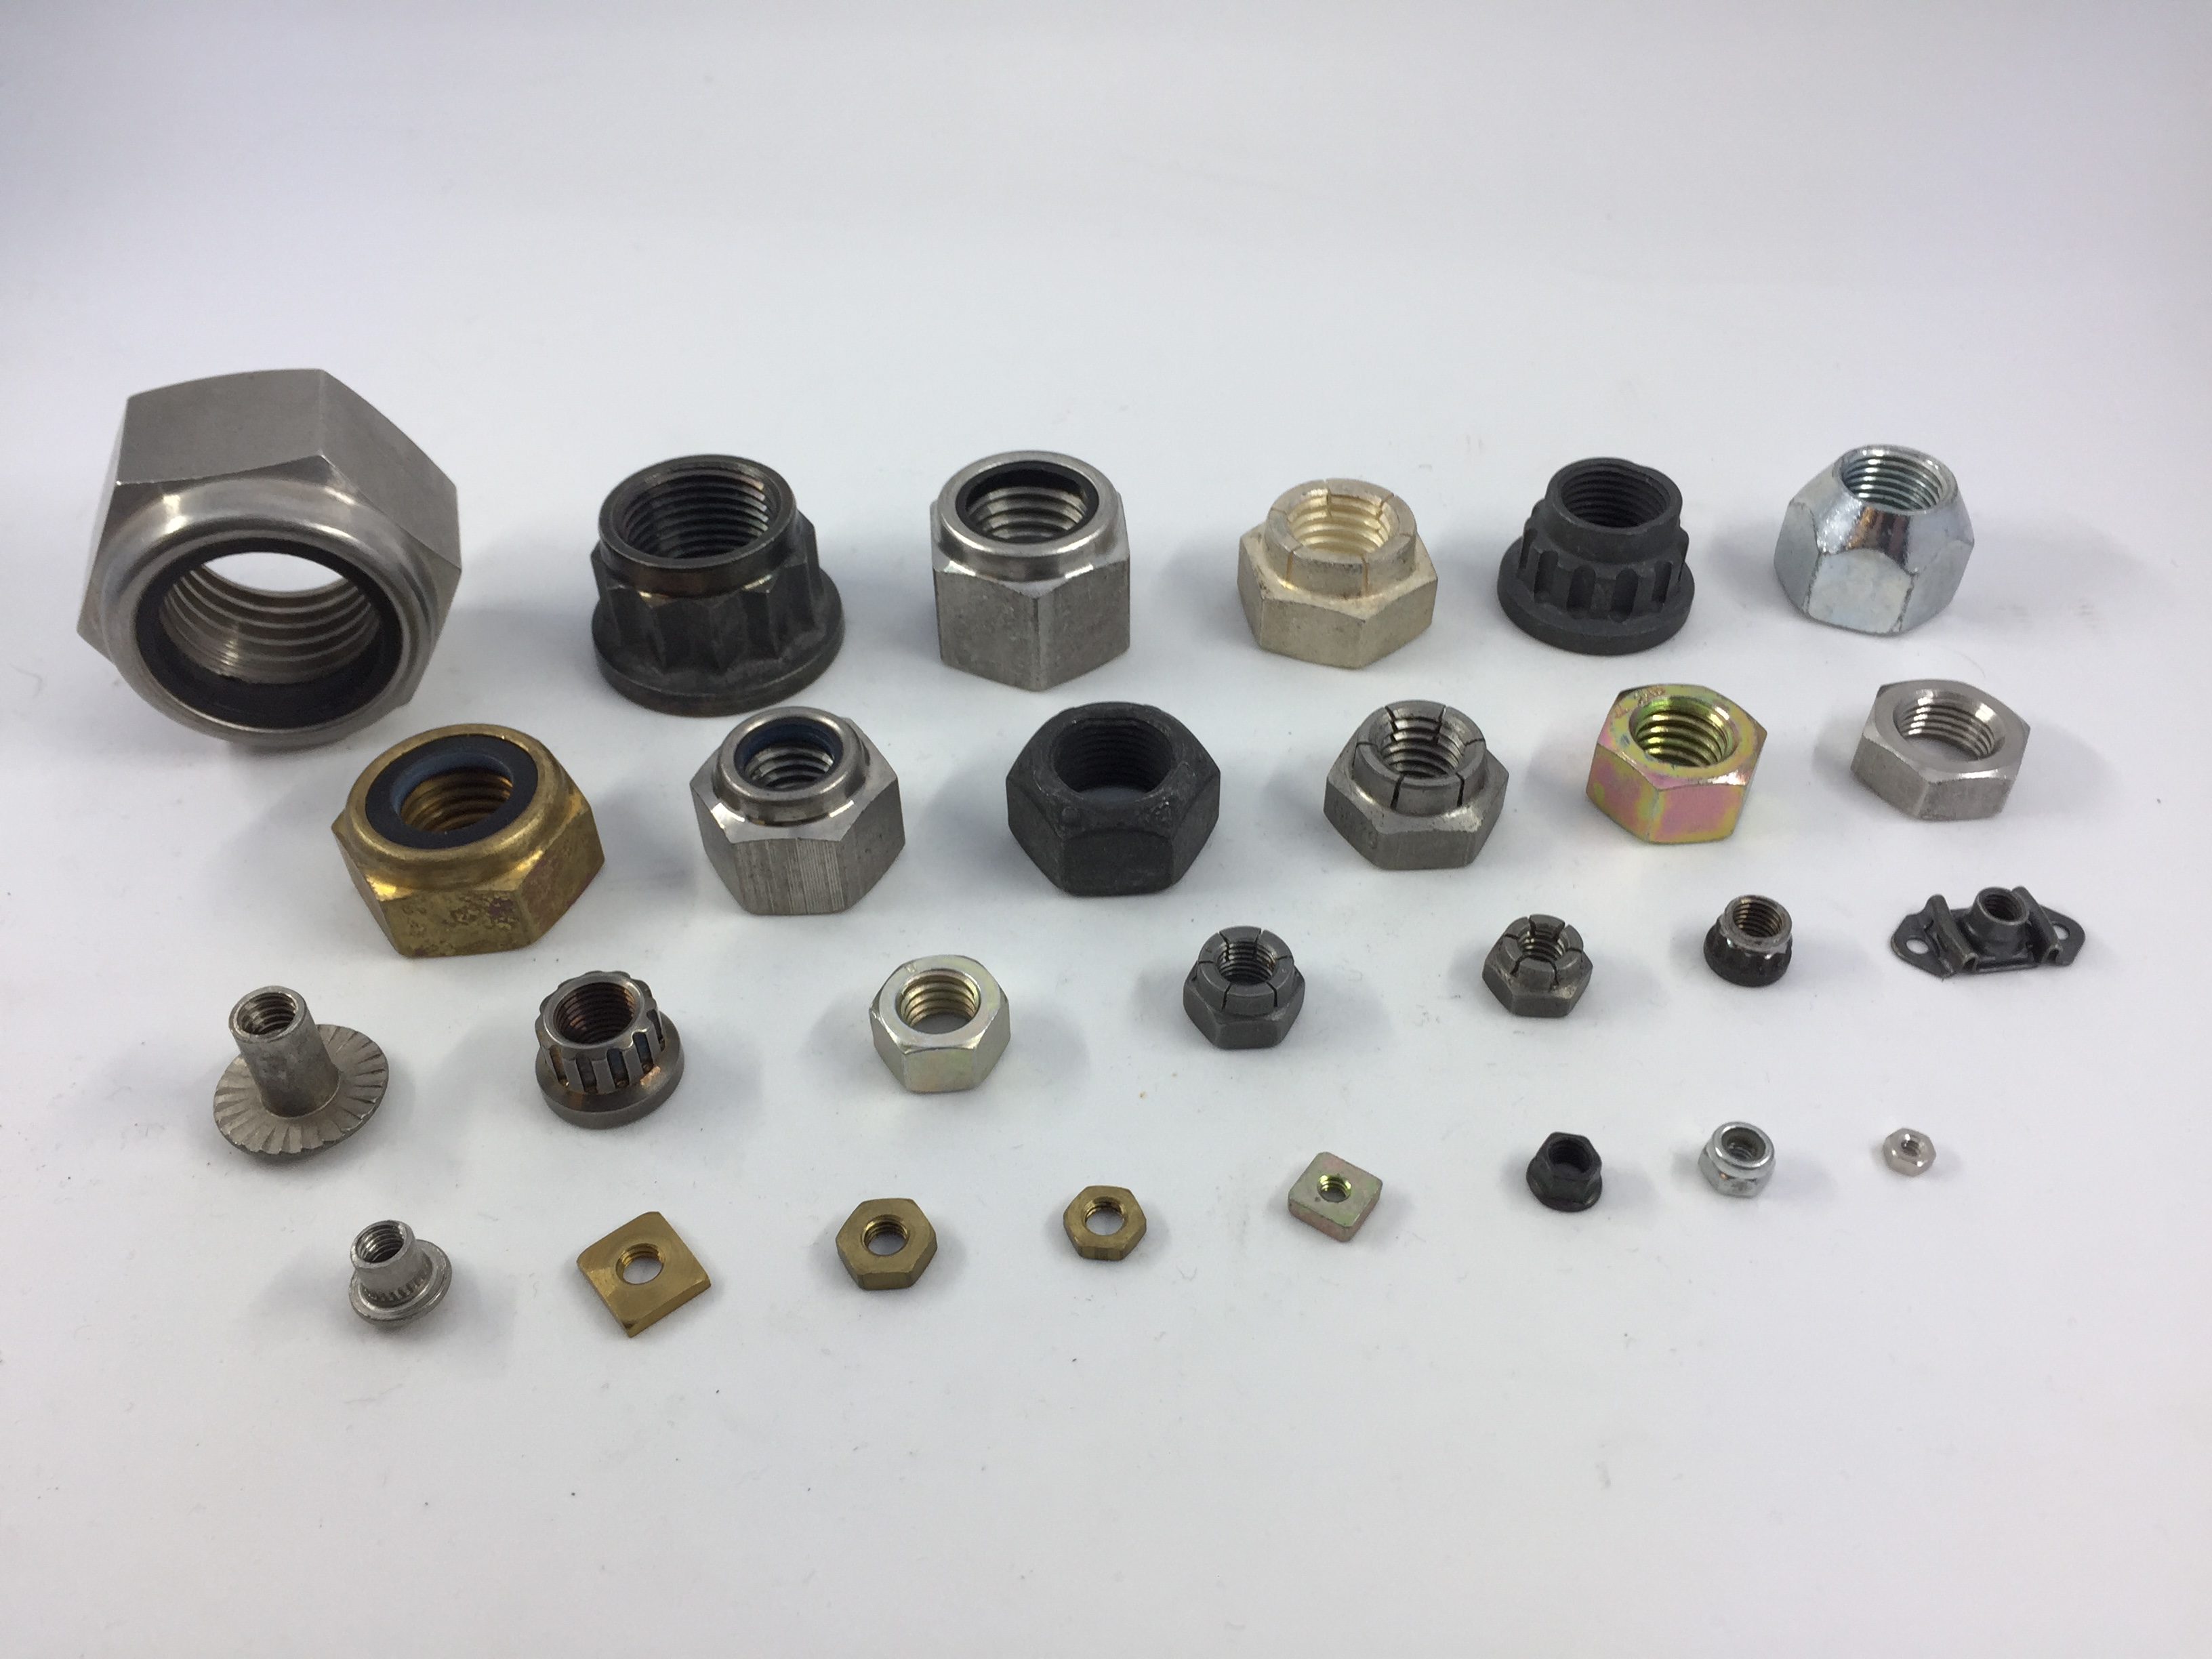 Nuts and Self Locking Nuts